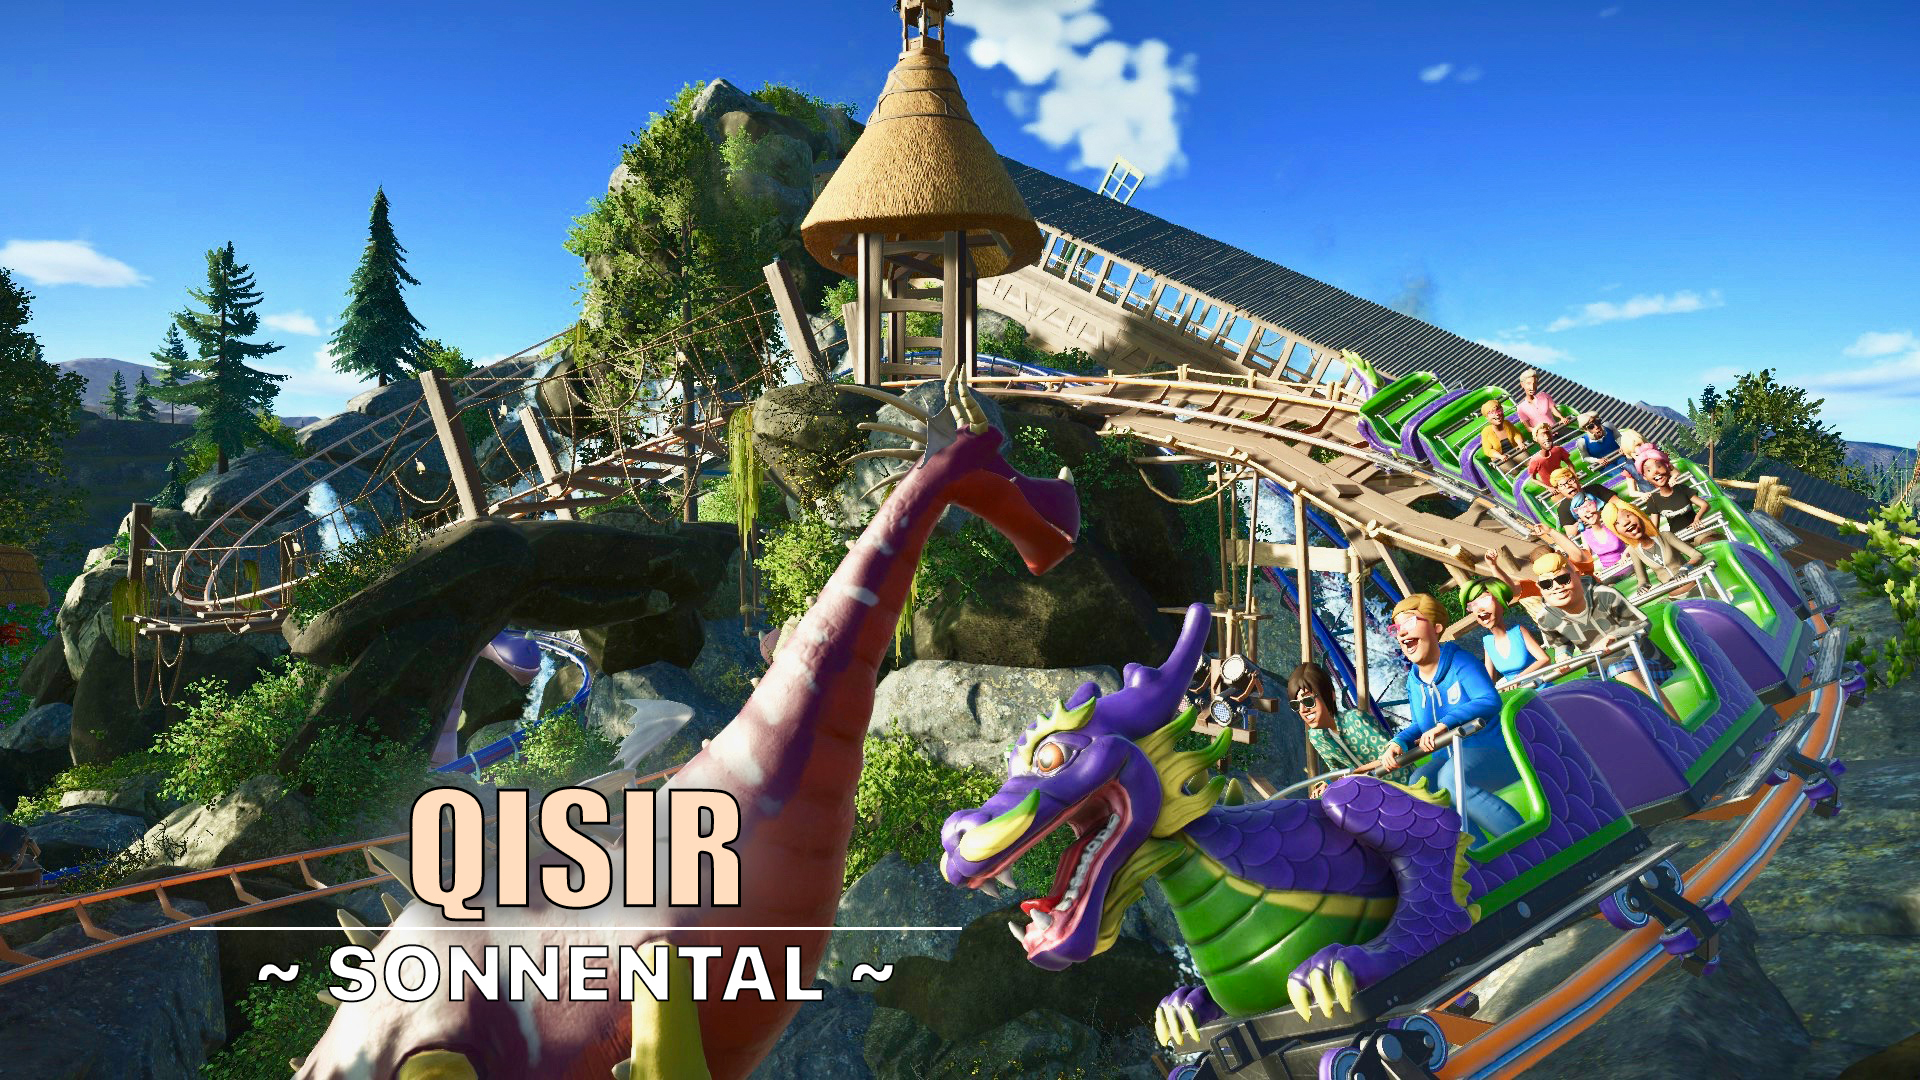 Qisir dragon coaster